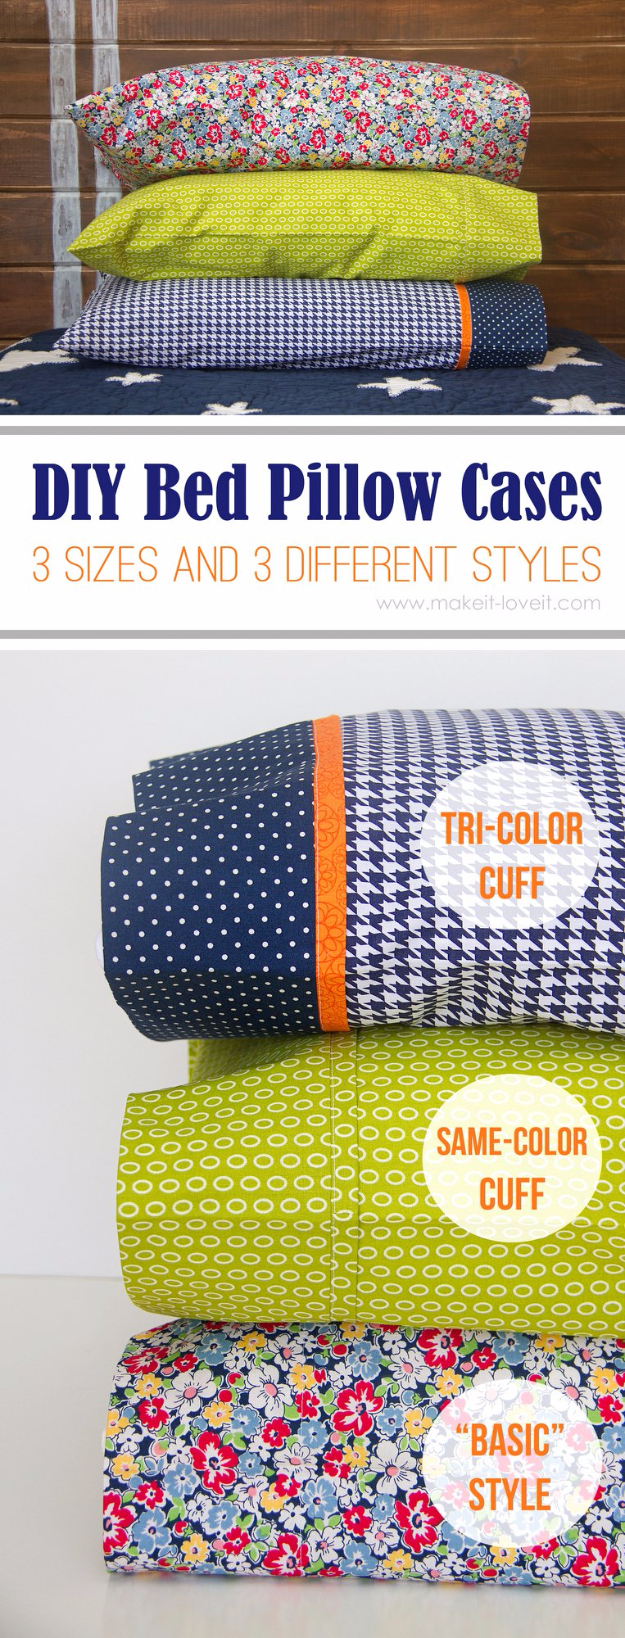 DIY Pillowcases - DIY Bed Pillow Cases - Easy Sewing Projects for Pillows - Bedroom and Home Decor Ideas - Sewing Patterns and Tutorials - No Sew Ideas - DIY Projects and Crafts for Women #sewing #diydecor #pillows